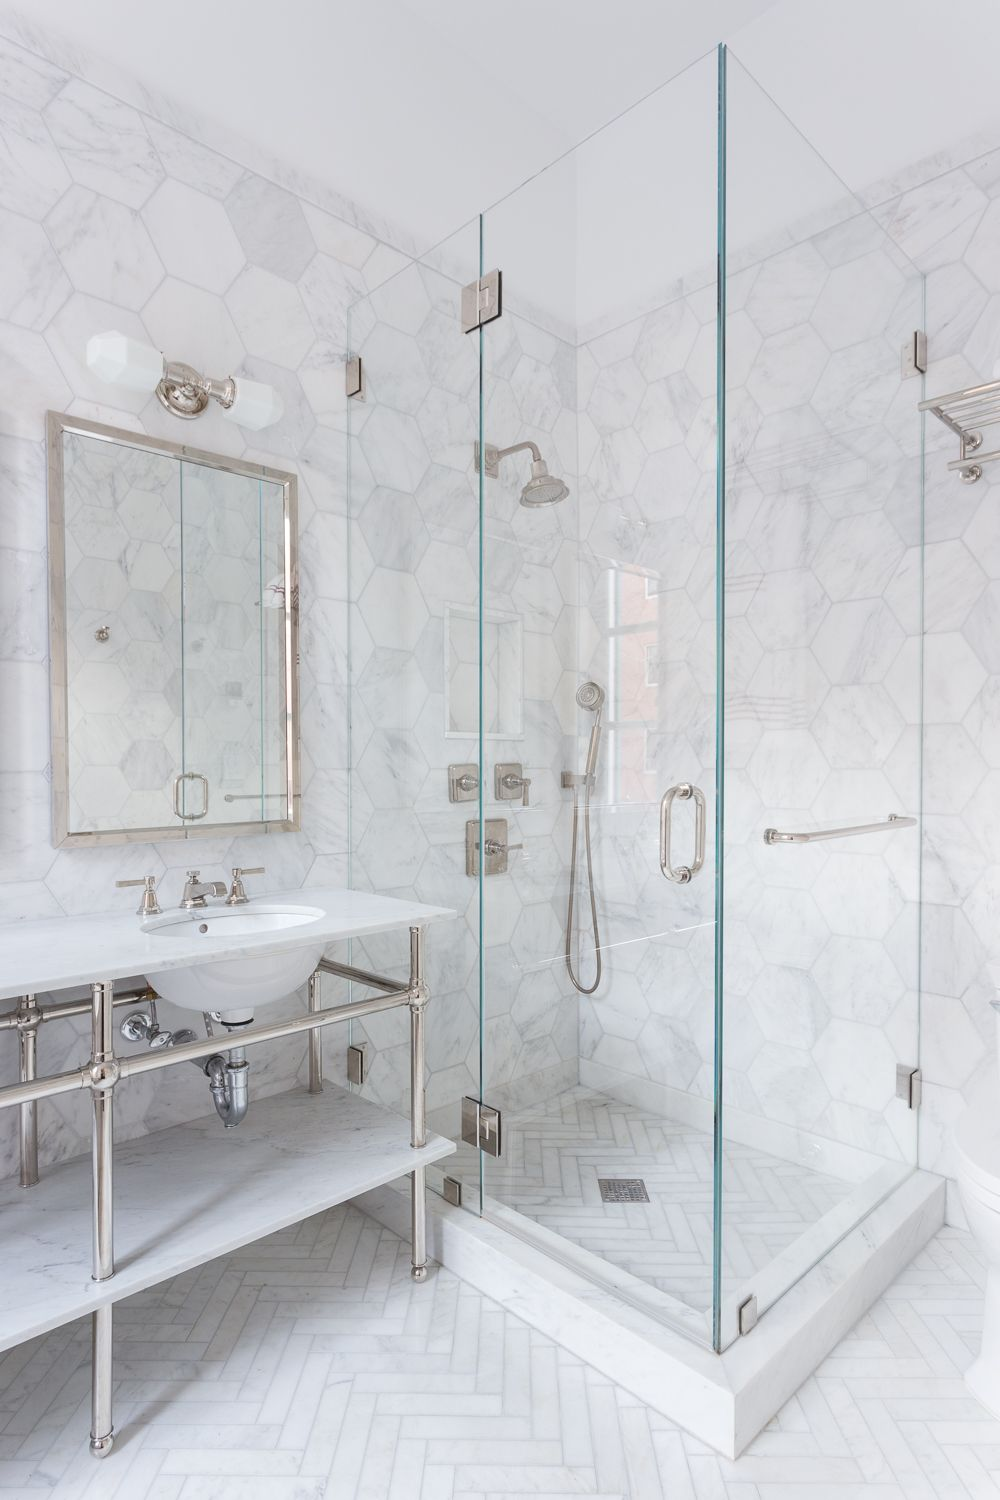 Large Hex Tiles For A Bathroom